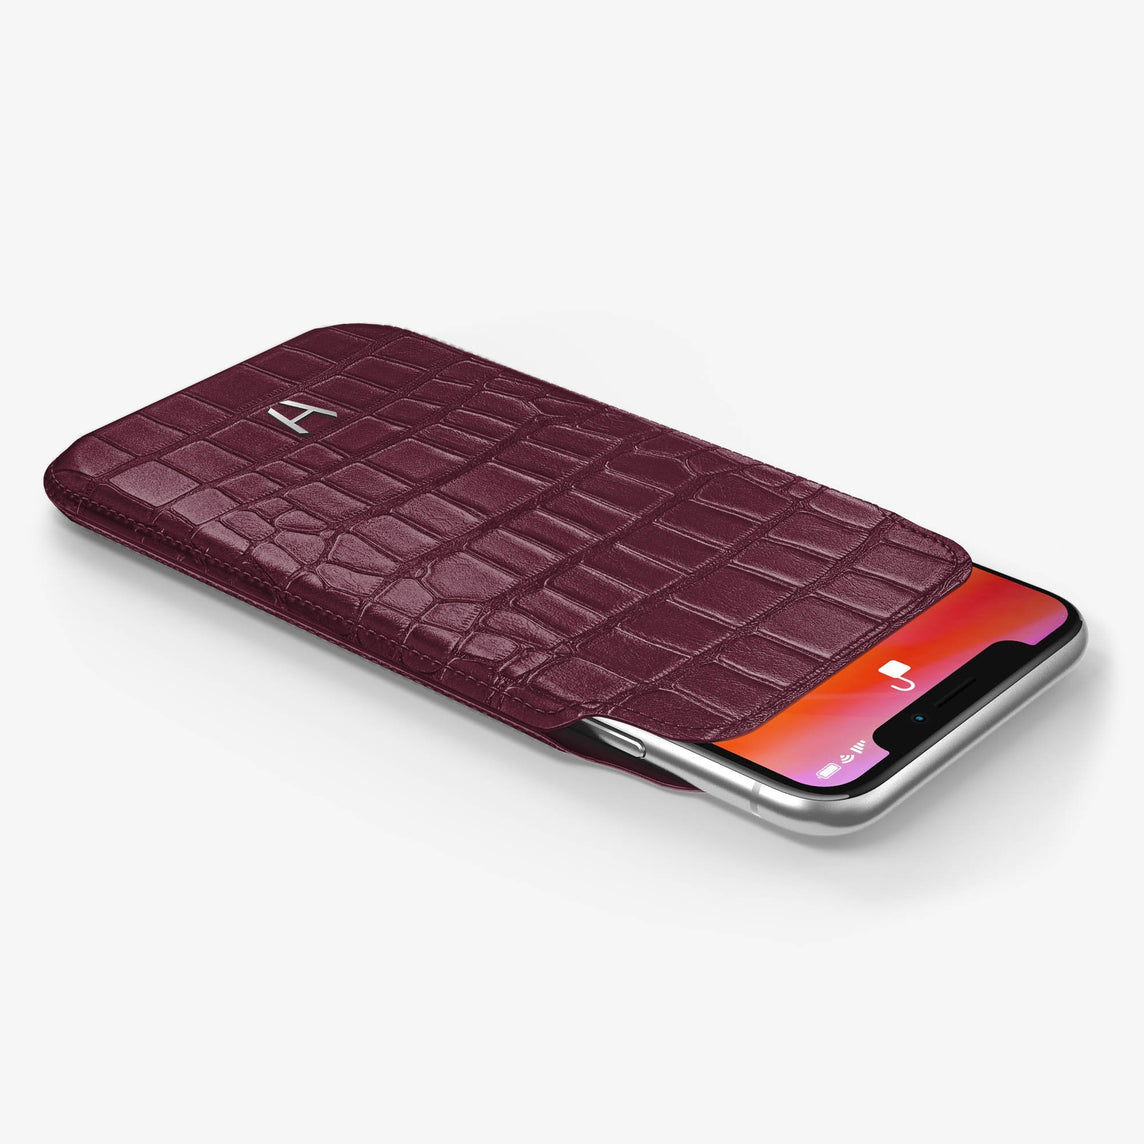 Alligator [iPhone Sleeve Case] [model:iphone-xr-case] [colour:burgundy] [finishing:stainless-steel]